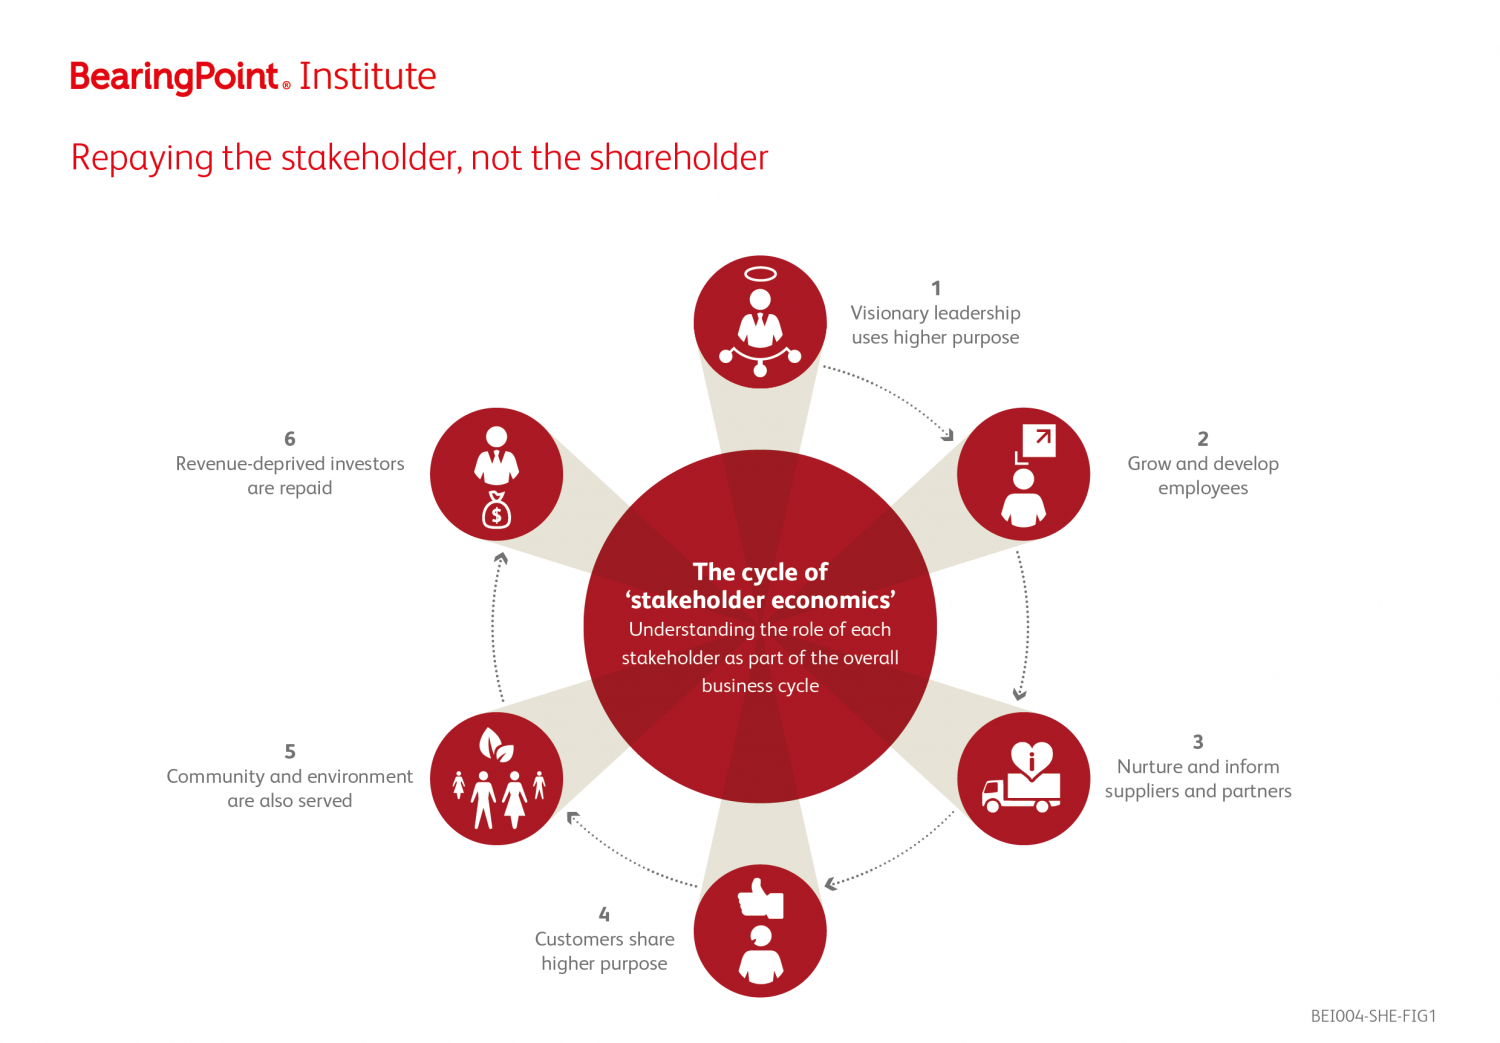 Repaying the Stakeholder, not the Shareholder Infographic